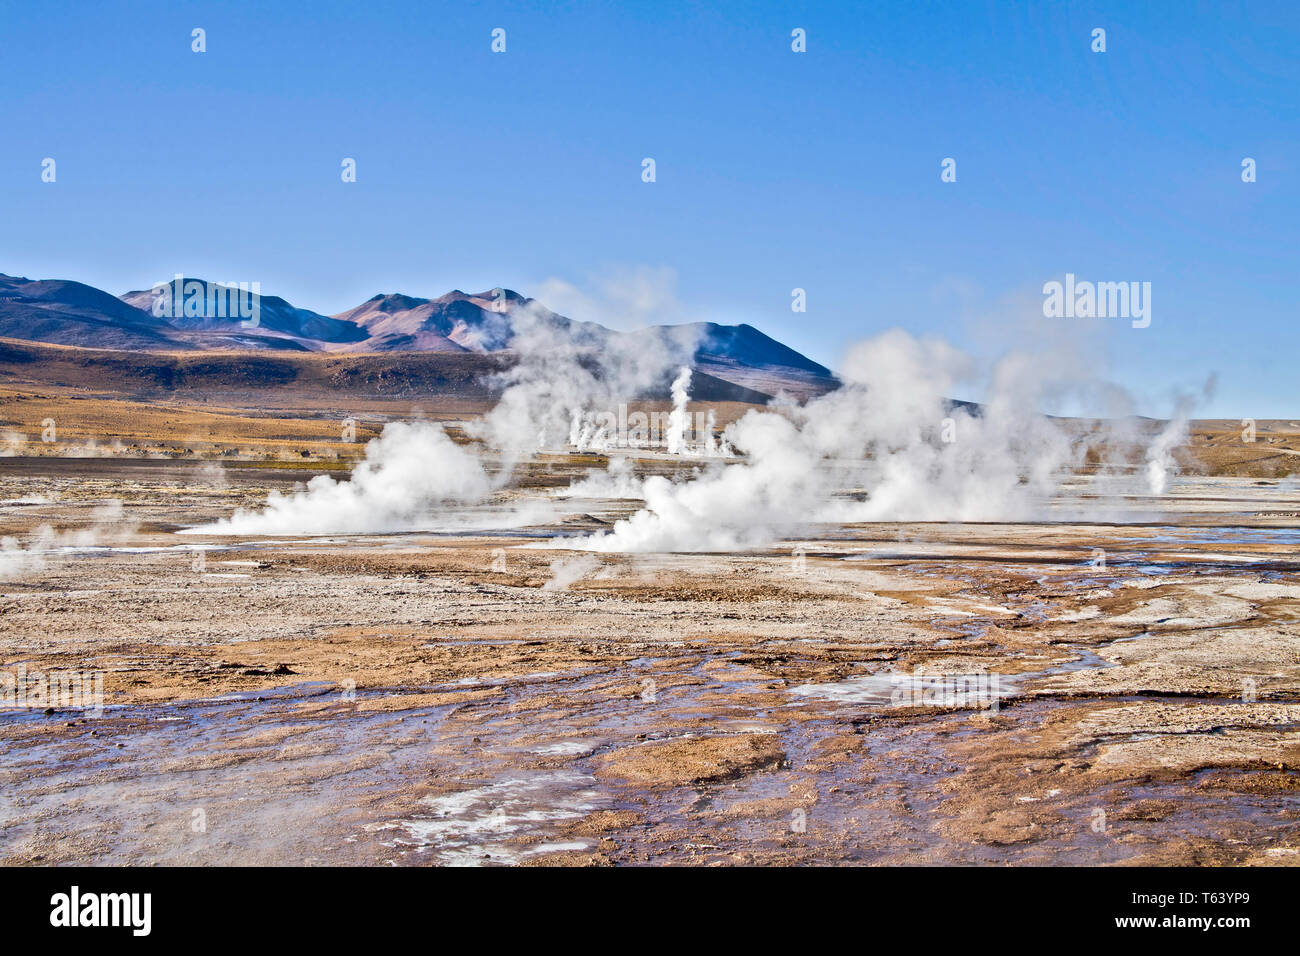 You have to get up at day break to appreciate the steam from the hydrothermal vents of the El Tatio geyser field in the Chilean high Atacama desert. - Stock Image